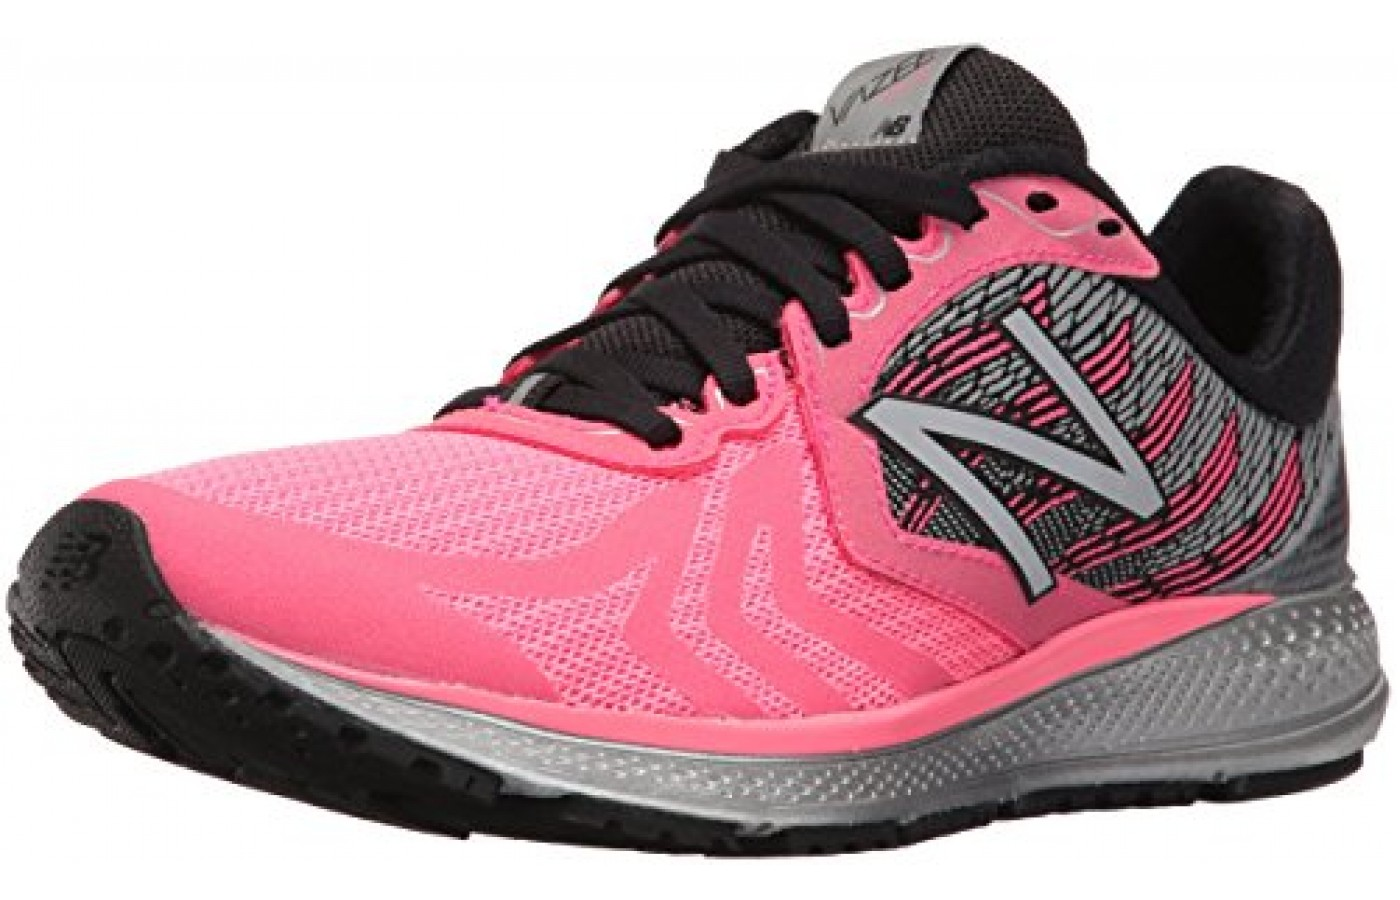 New Balance Vazee Pace v2 left to right